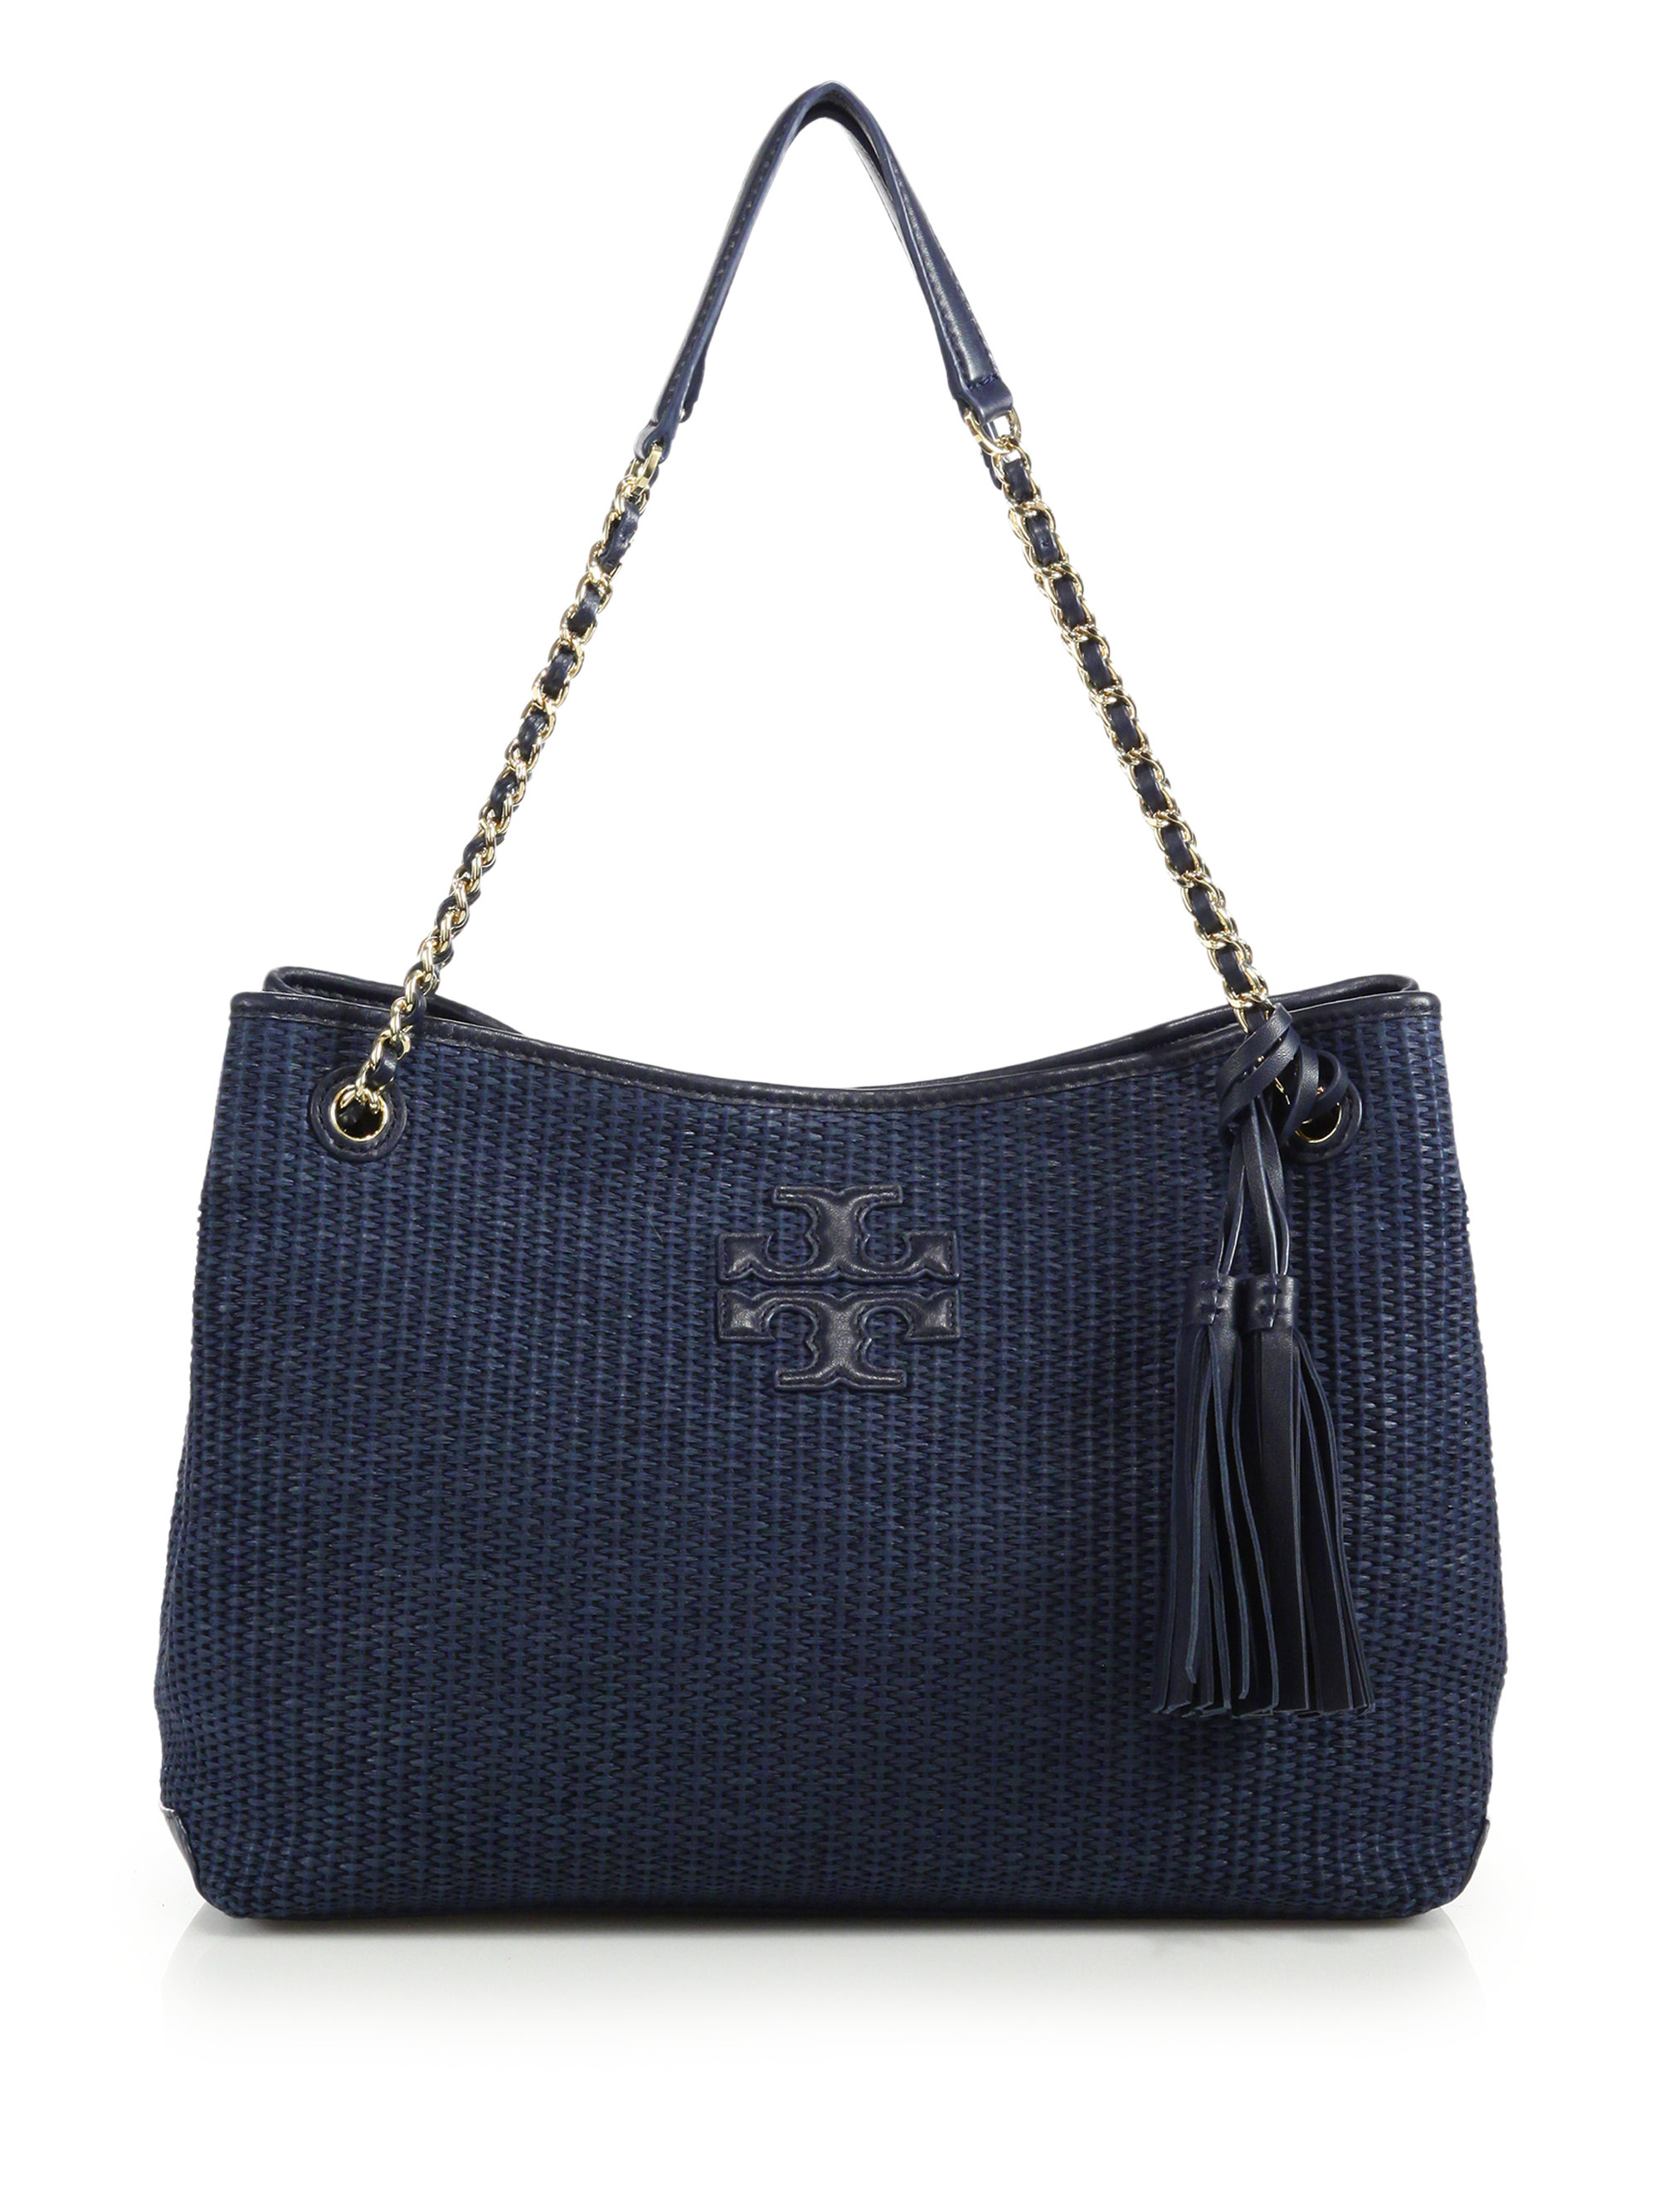 a192840595c Lyst - Tory Burch Thea Woven Straw   Metallic Leather Tote in Blue